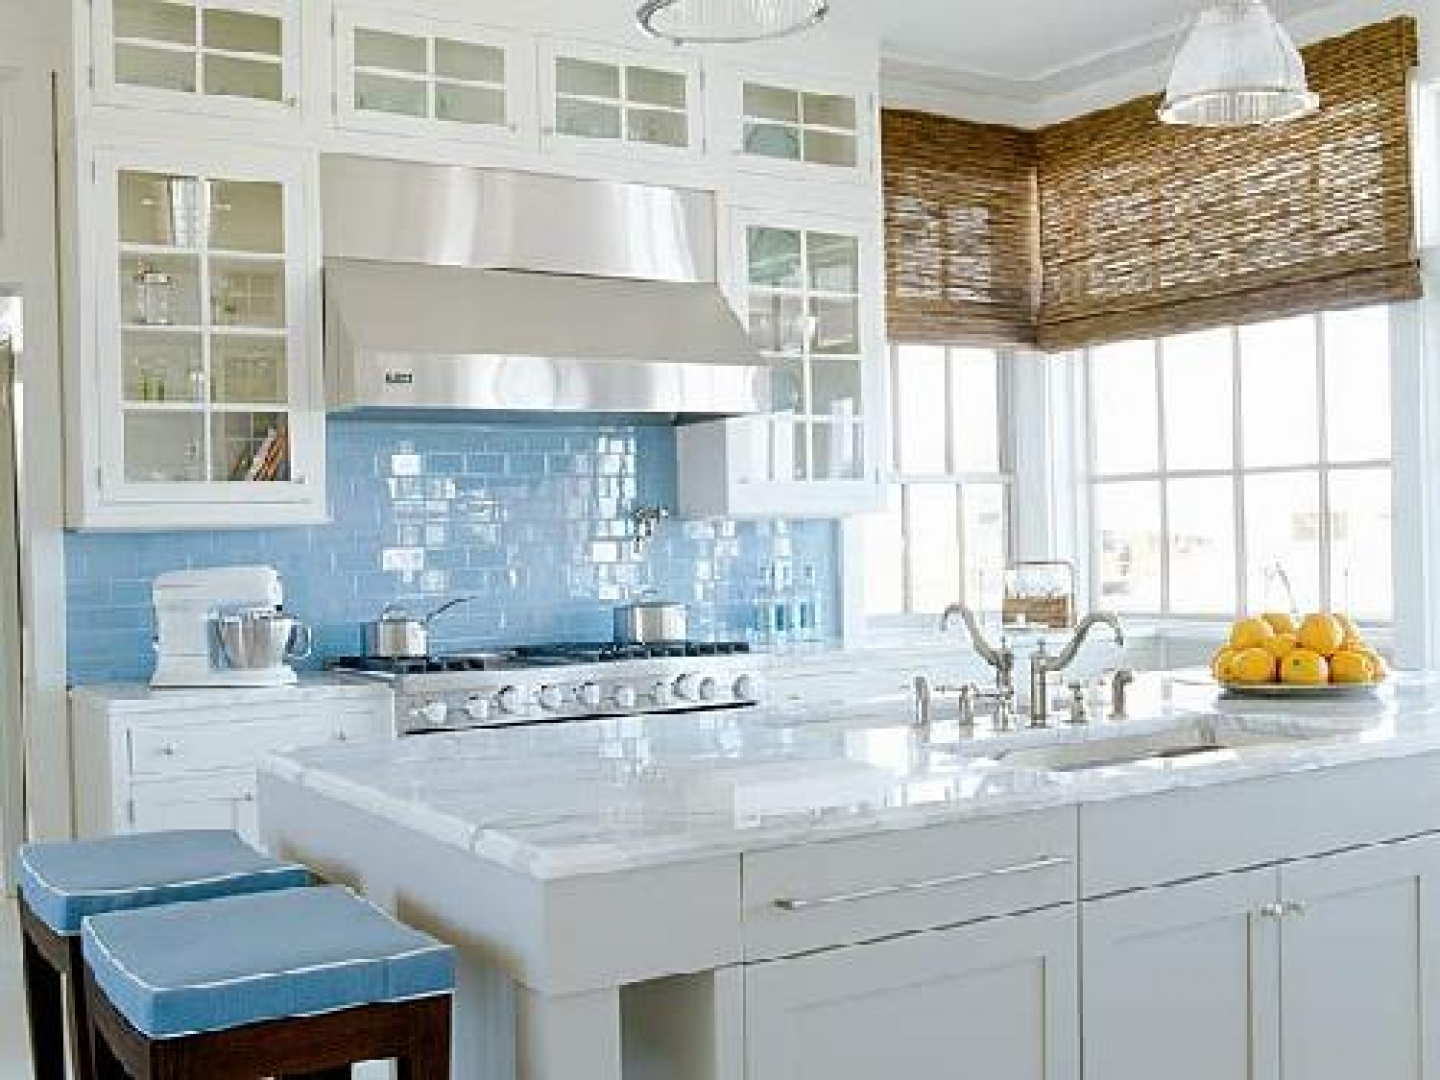 white kitchen cabinets grey granite worktops the maple best color countertops for white cabinets kitchen bamboo curtain ideas large kitchen chimney design